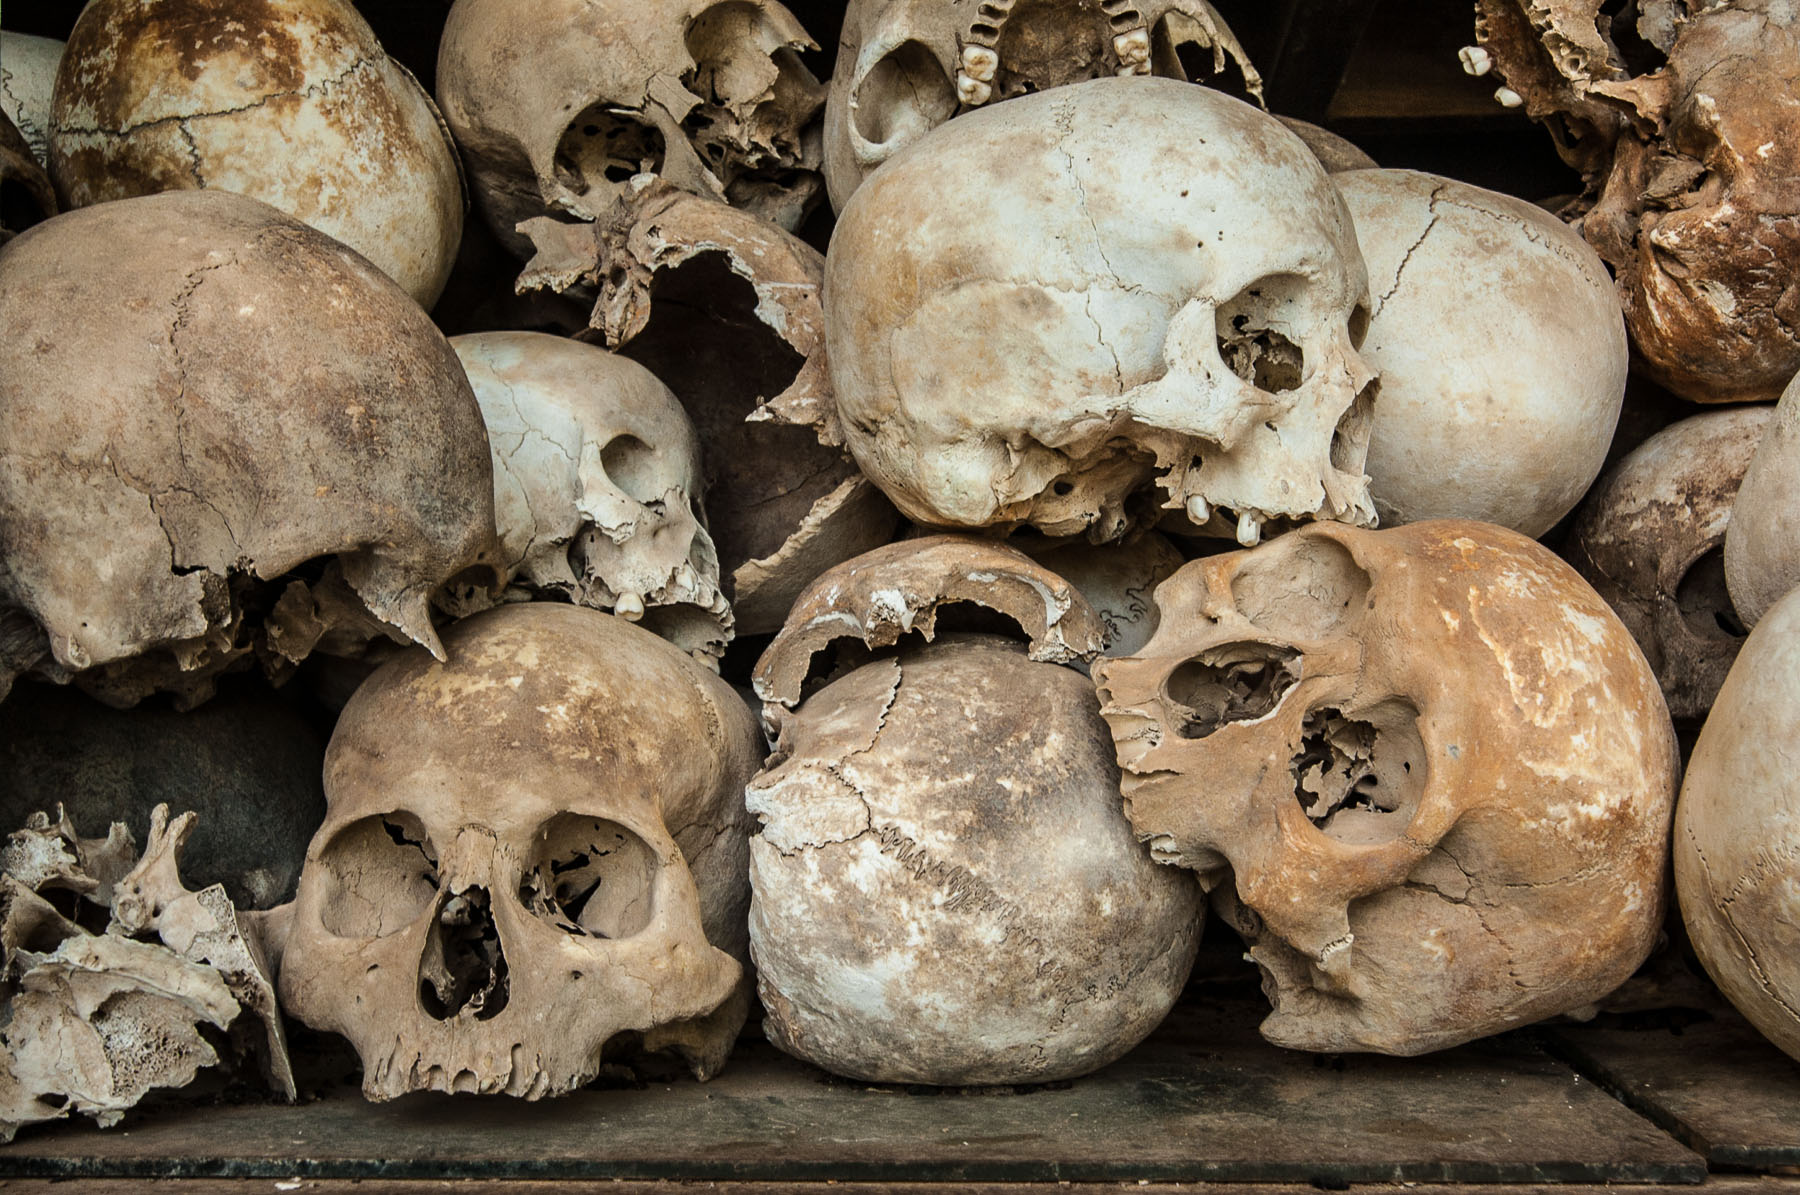 Skulls of Khmer Rouge prisoner victims, Killing Fields or Choeung Ek Cambodia.